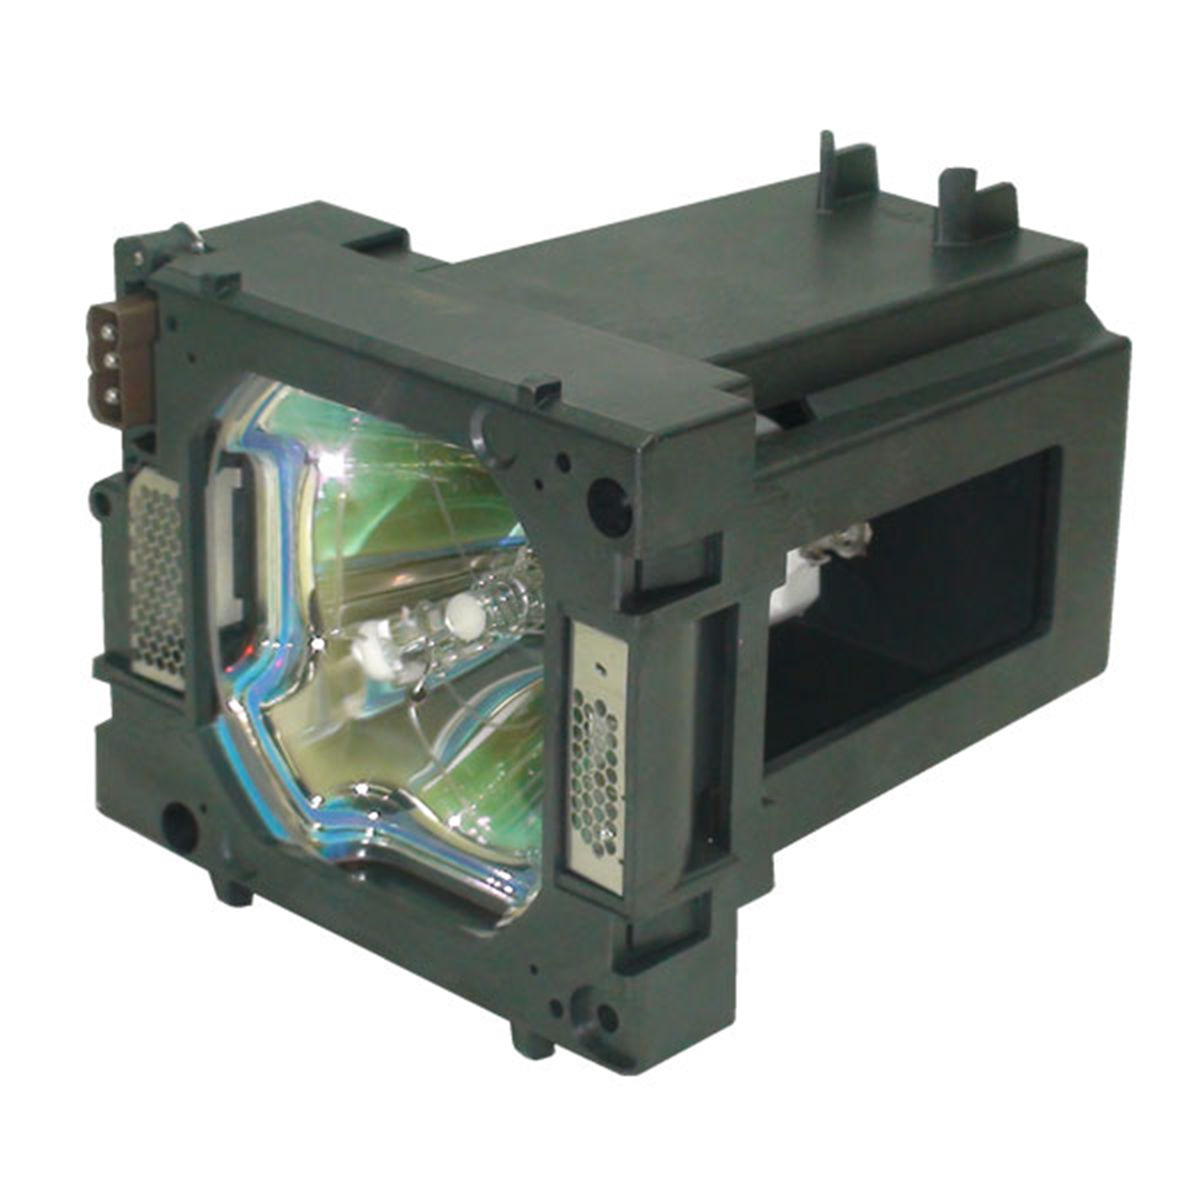 Projector Lamp Bulb POA-LMP124 POALMP124 LMP124 610-341-1941 for SANYO PLC-XP200L PLC-XP200 XP200 with housing lamp housing for sanyo 610 3252957 6103252957 projector dlp lcd bulb